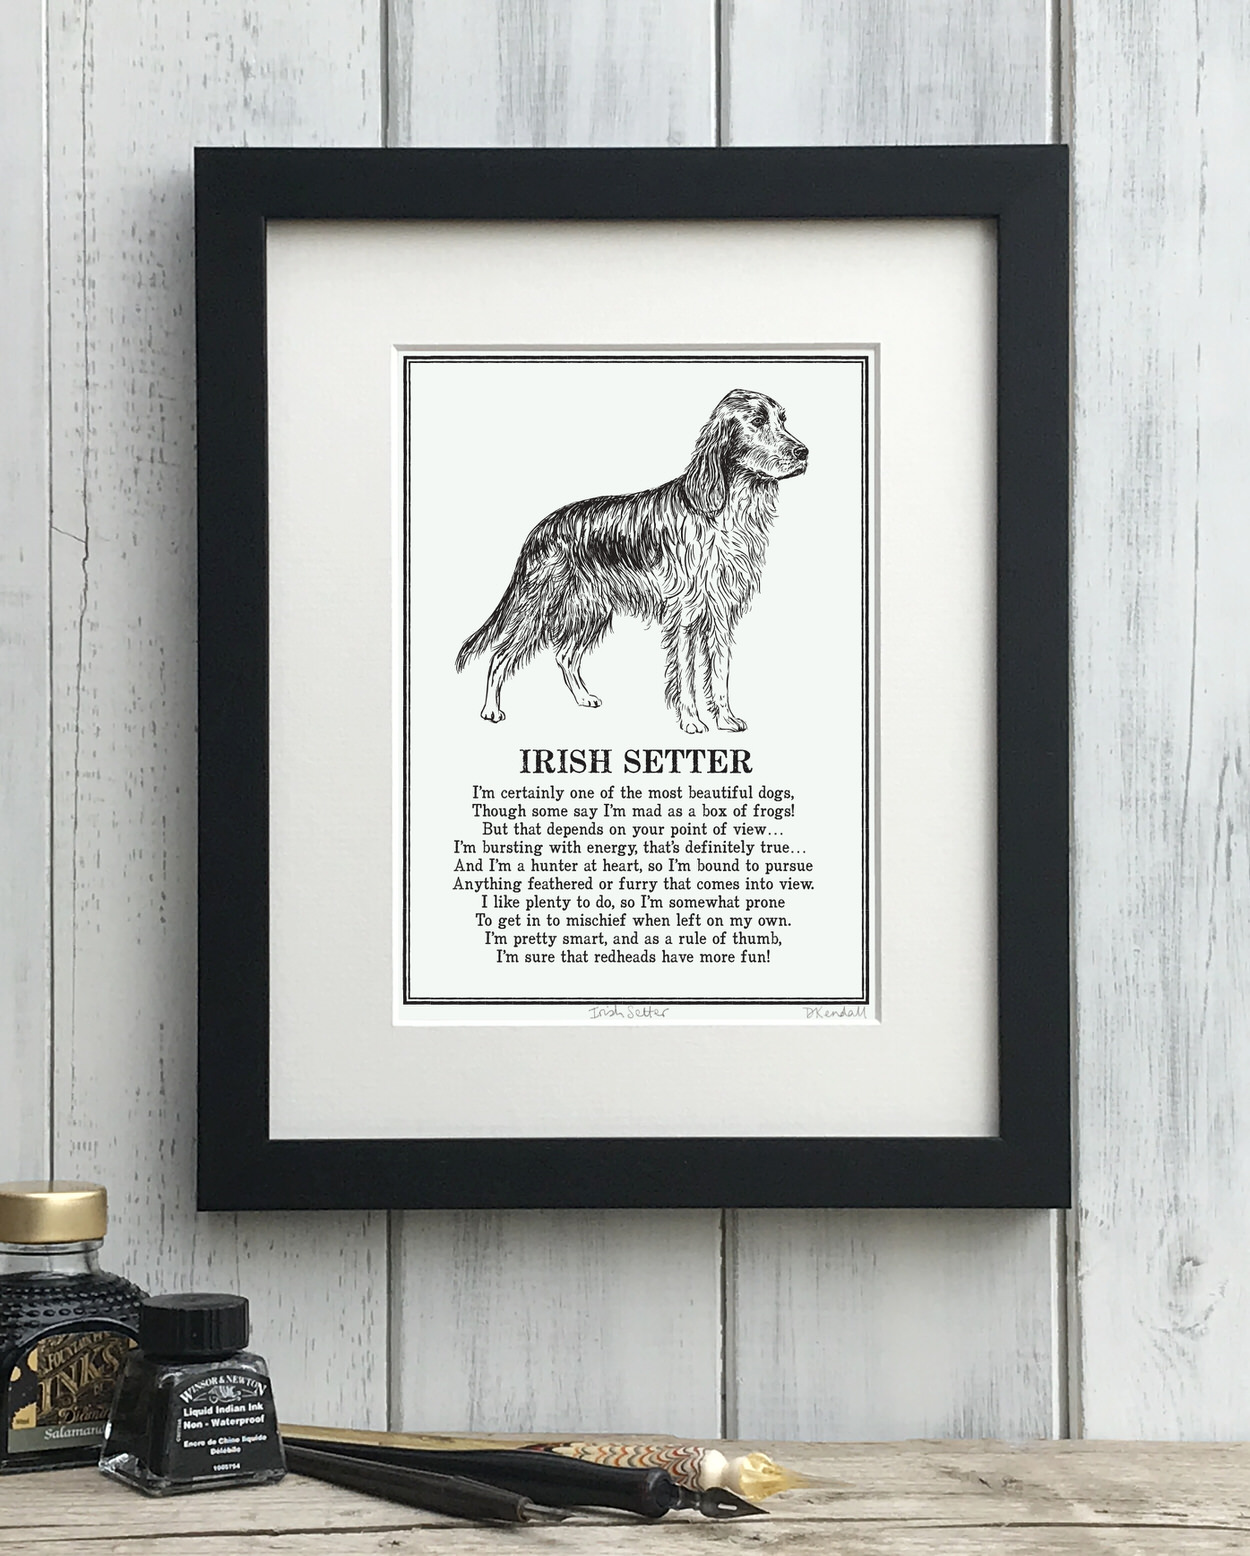 Irish Setter print illustrated poem by The Enlightened Hound